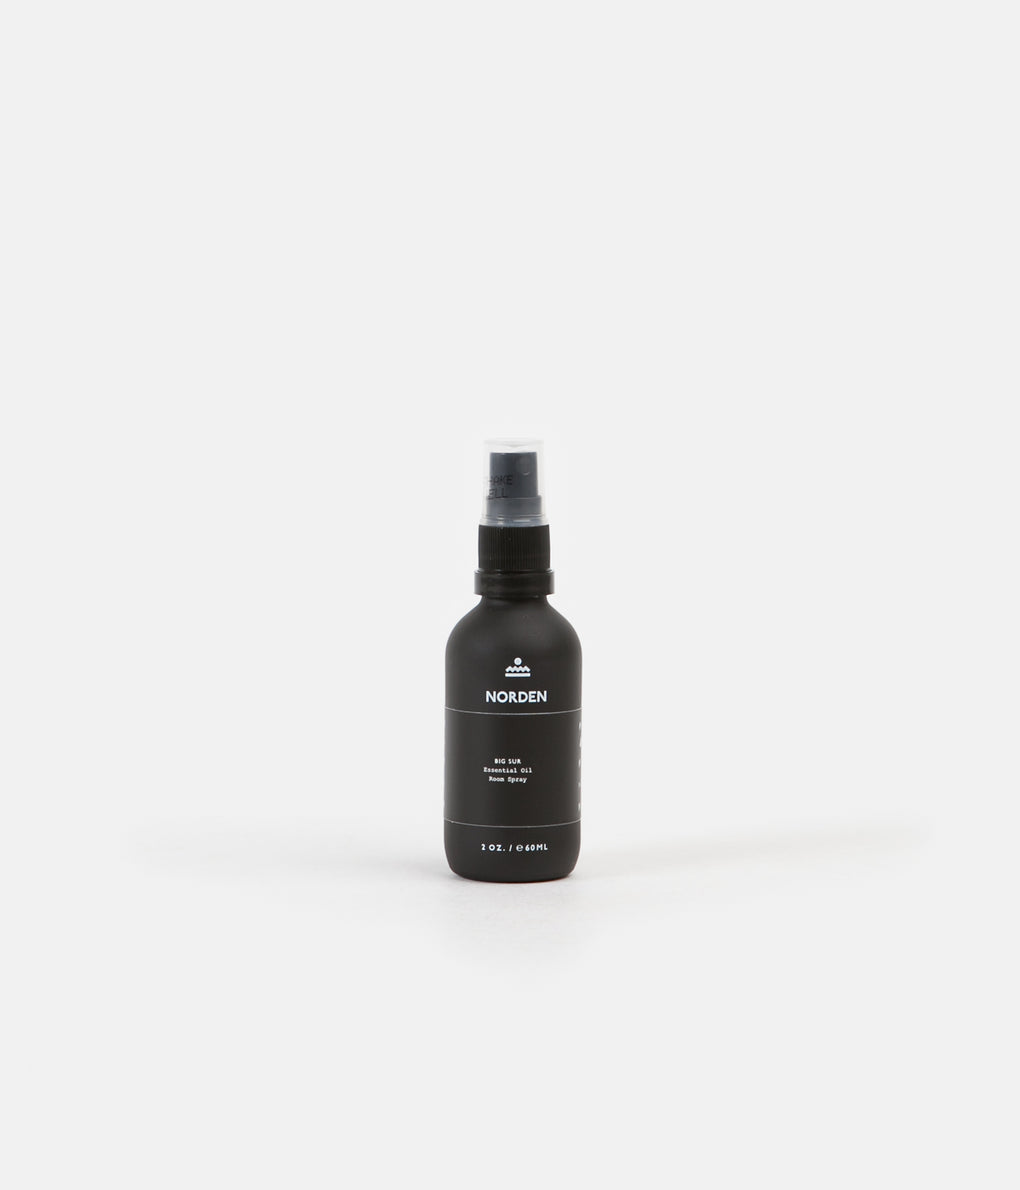 Norden 2oz Room Spray - Big Sur